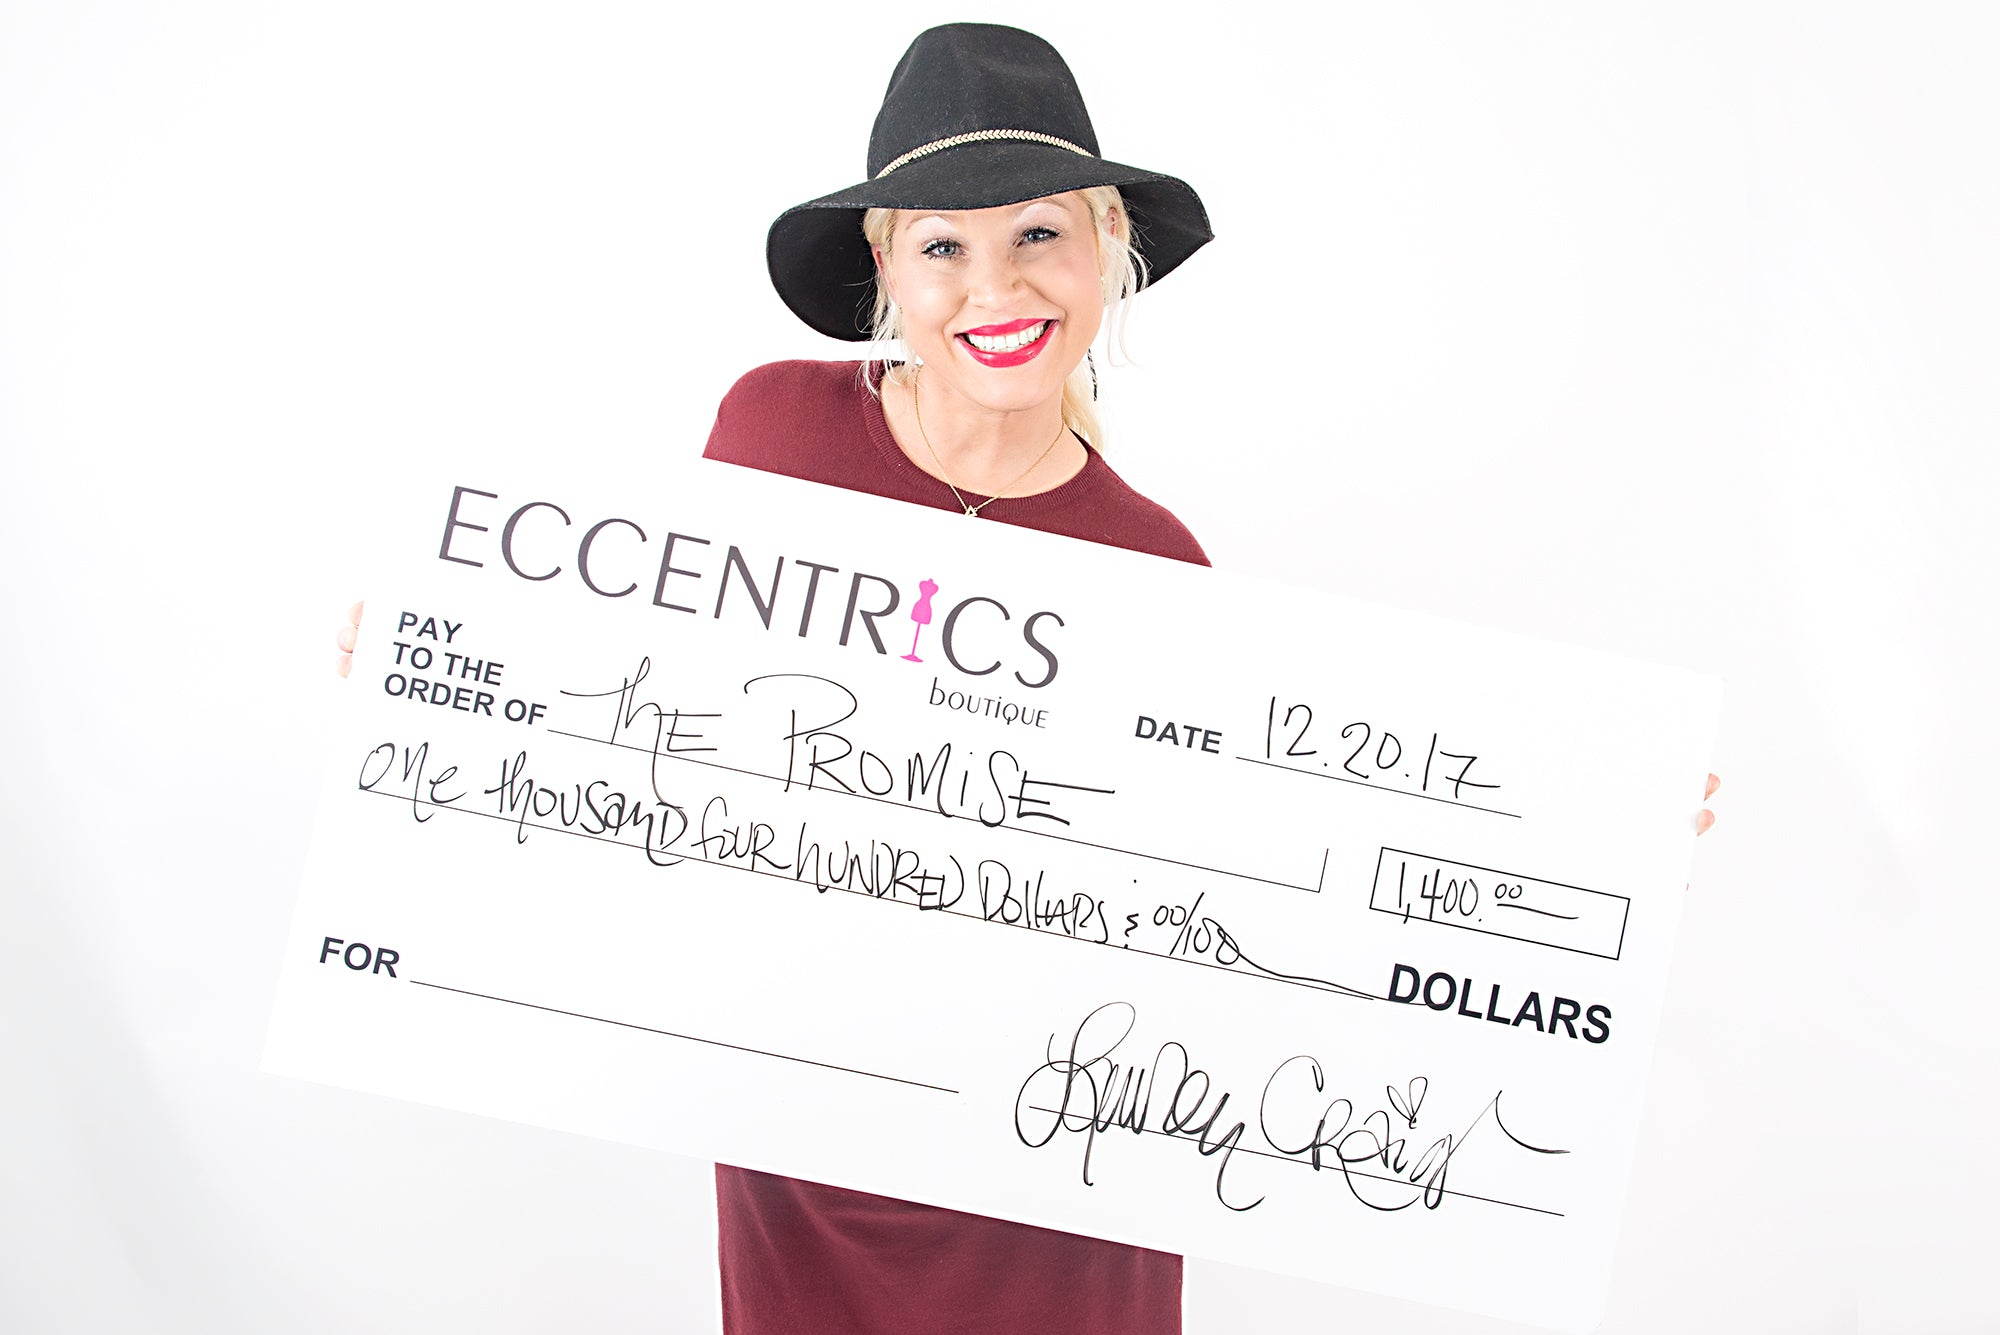 Eccentrics Boutique Give Back Beautiful: The Promise Mission in Marion, Illinois